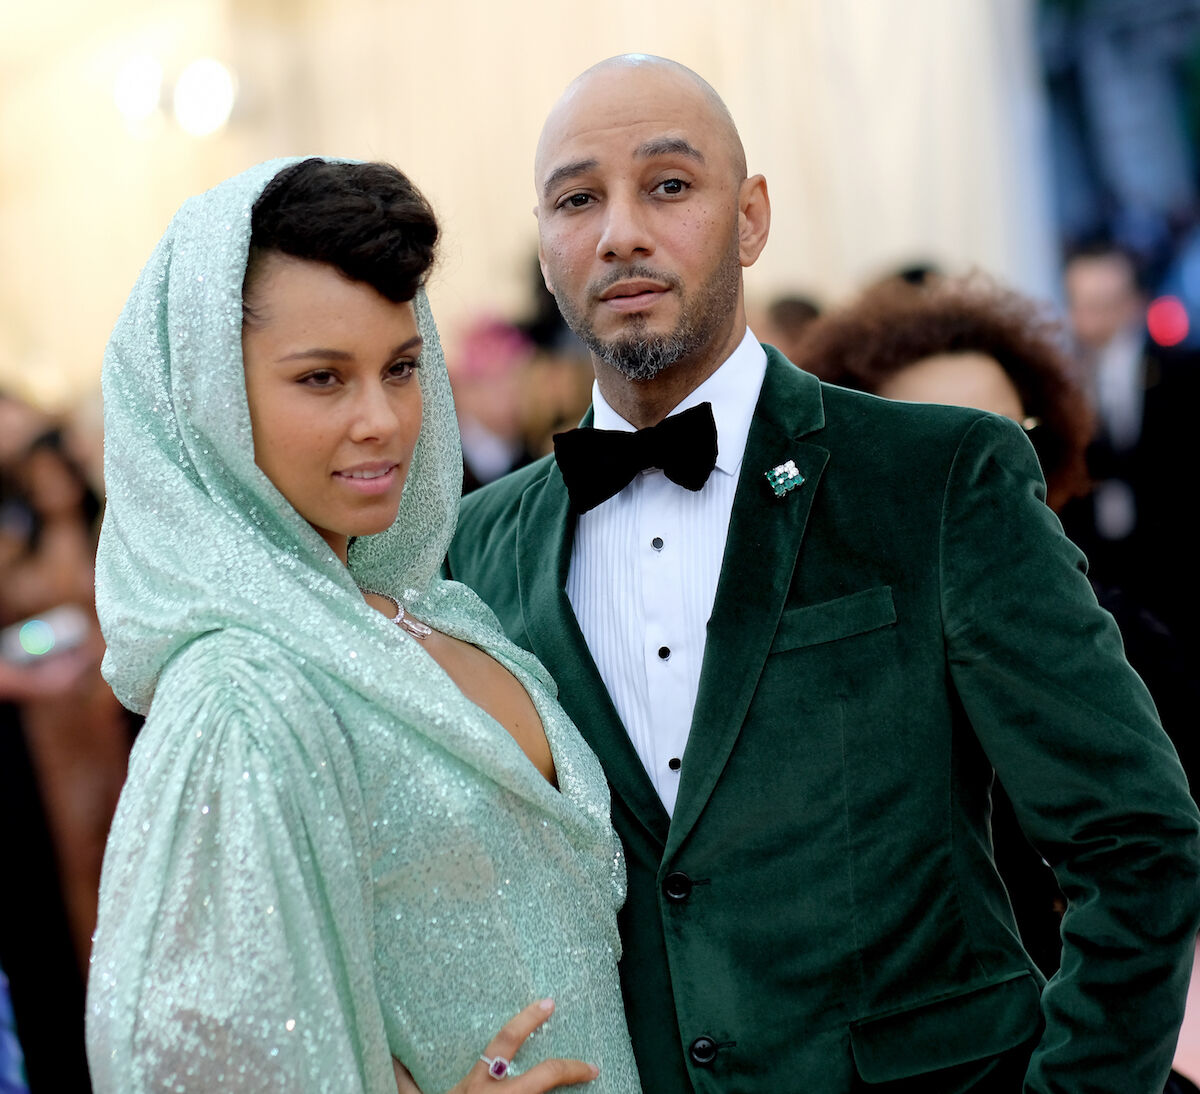 Alicia Keys and Swizz Beatz at the 2019 Met Gala. Photo by Dimitrios Kambouris/Getty Images for The Met Museum/Vogue.